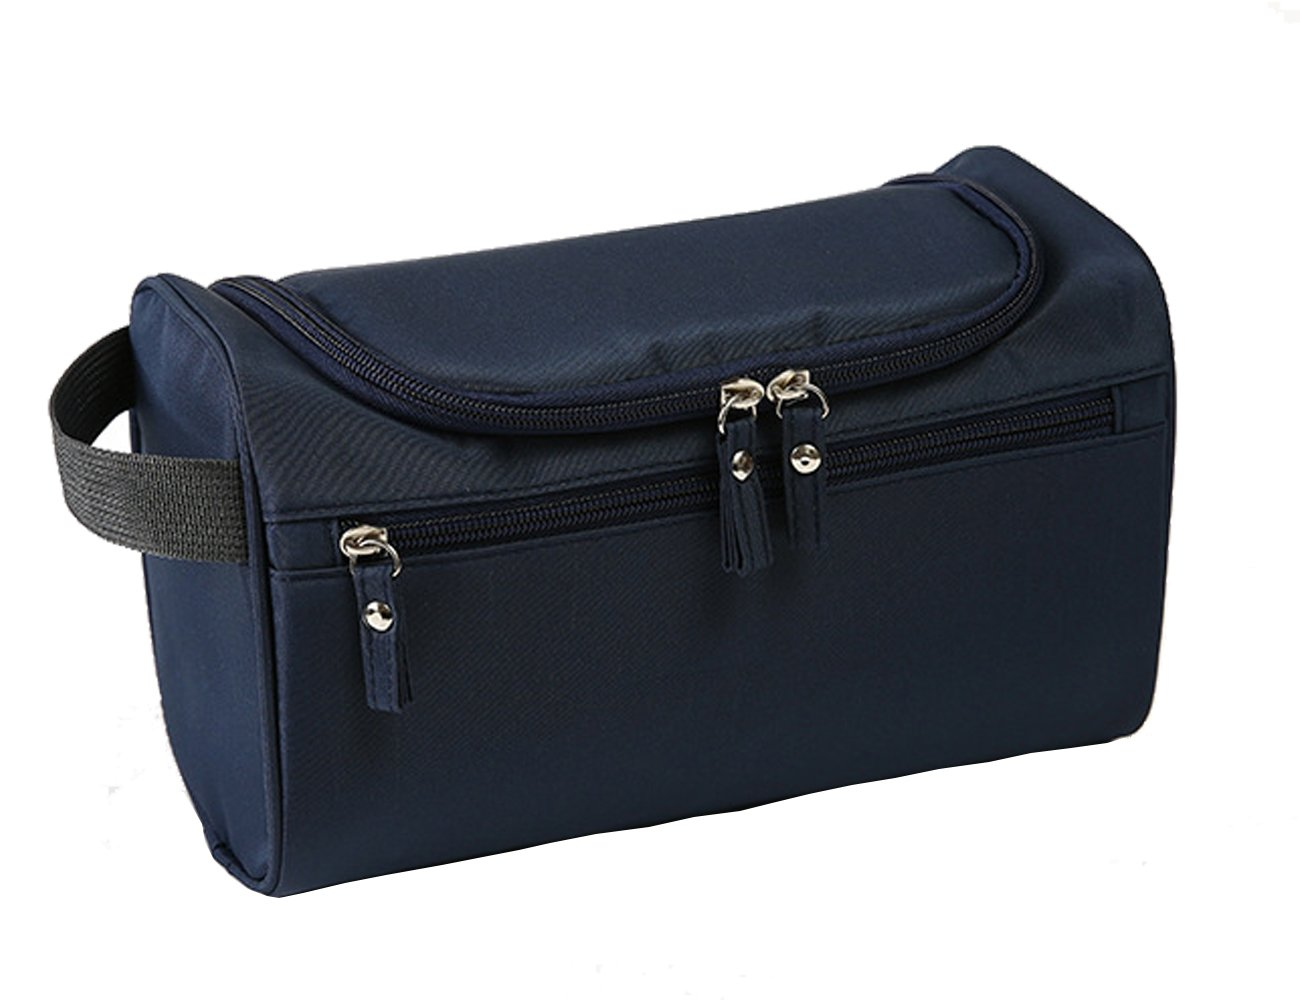 Hanging Toiletry Bag Travel Bag Water Resistant Lightweight Wash Gym Shaving Bag Organizer for Women Men 10 x 5.5 x 5 inches(Dark Blue)